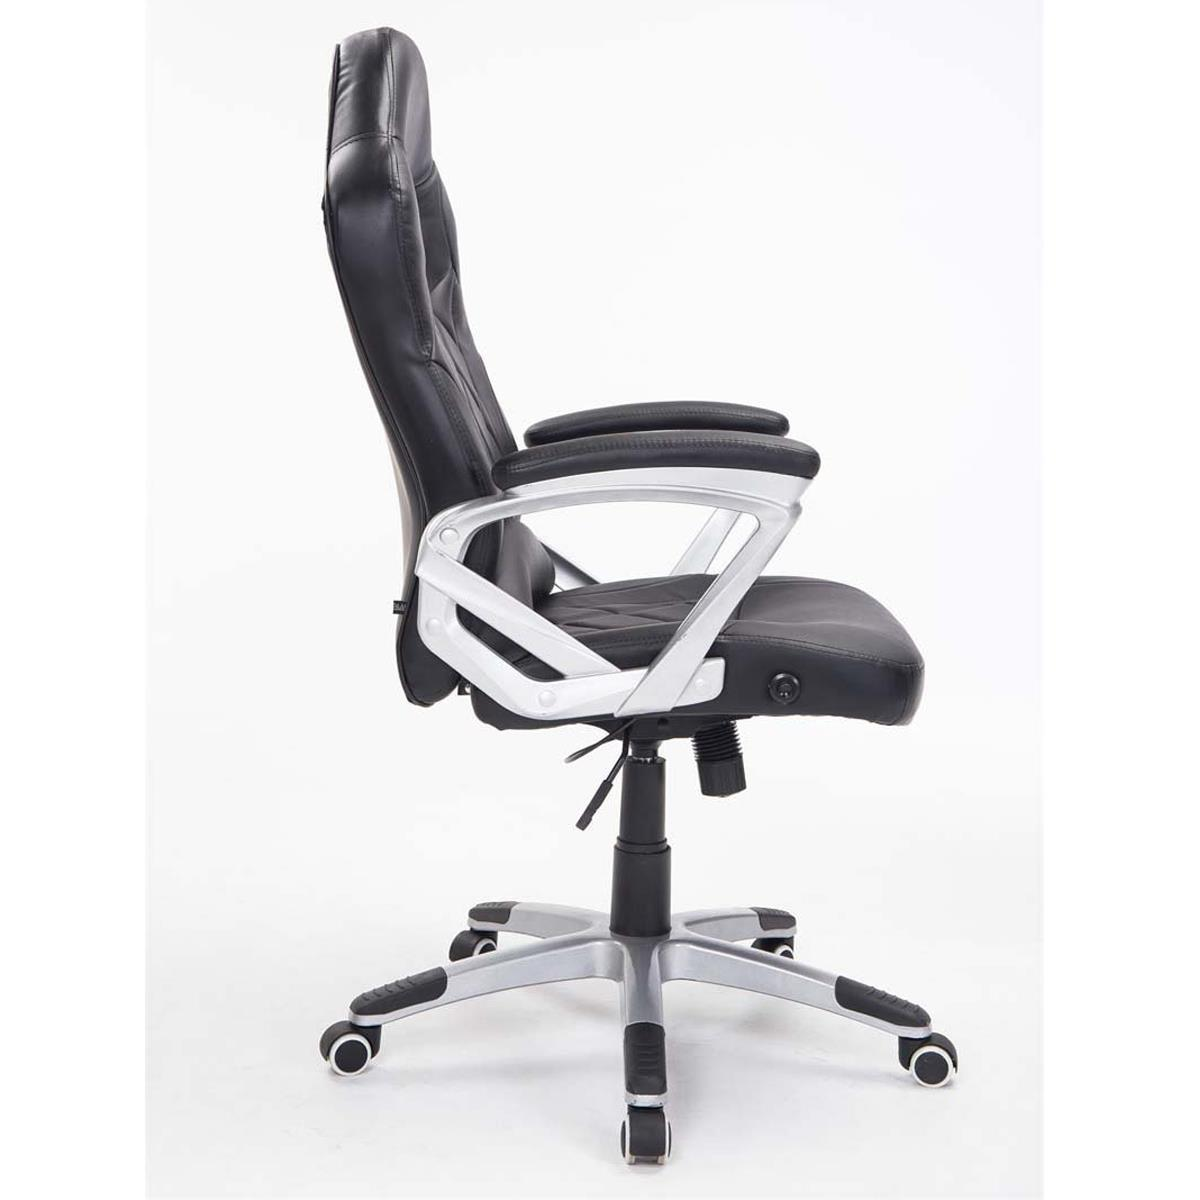 Silla gaming enao dise o deportivo en negro sill n for Sillas gaming rebajas